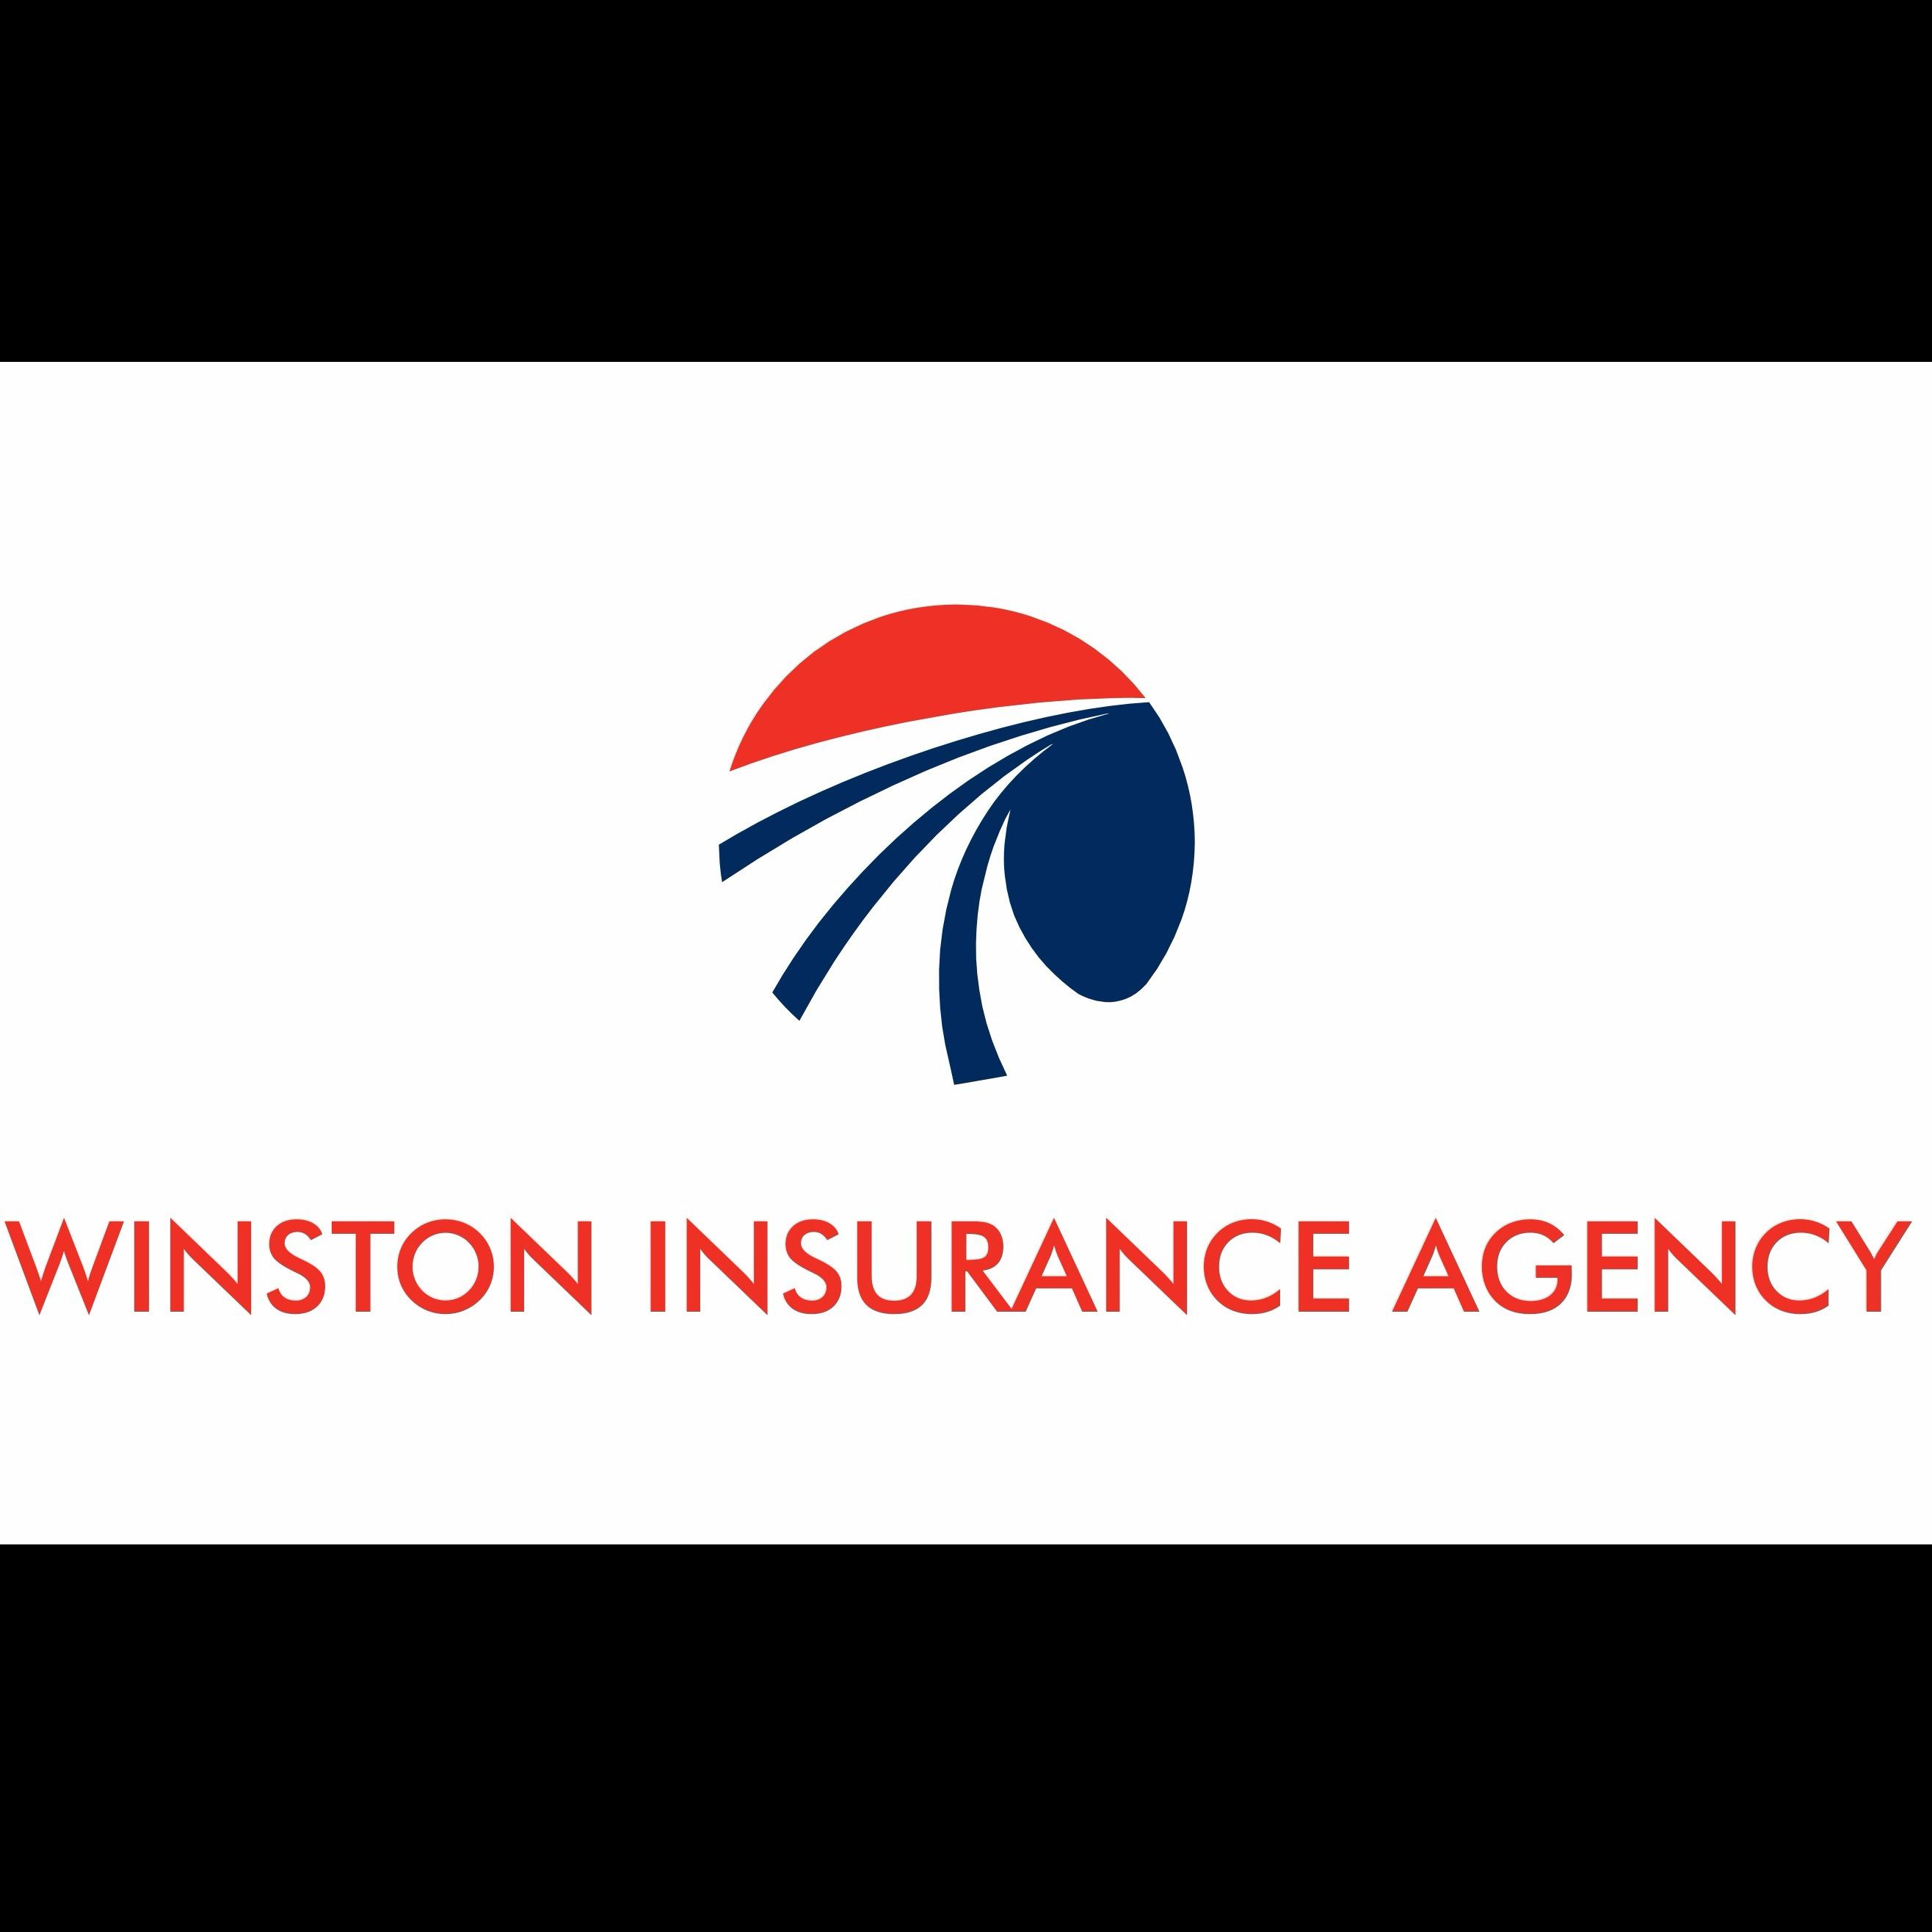 Winston Insurance Agency In Montclair Ca Auto Insurance